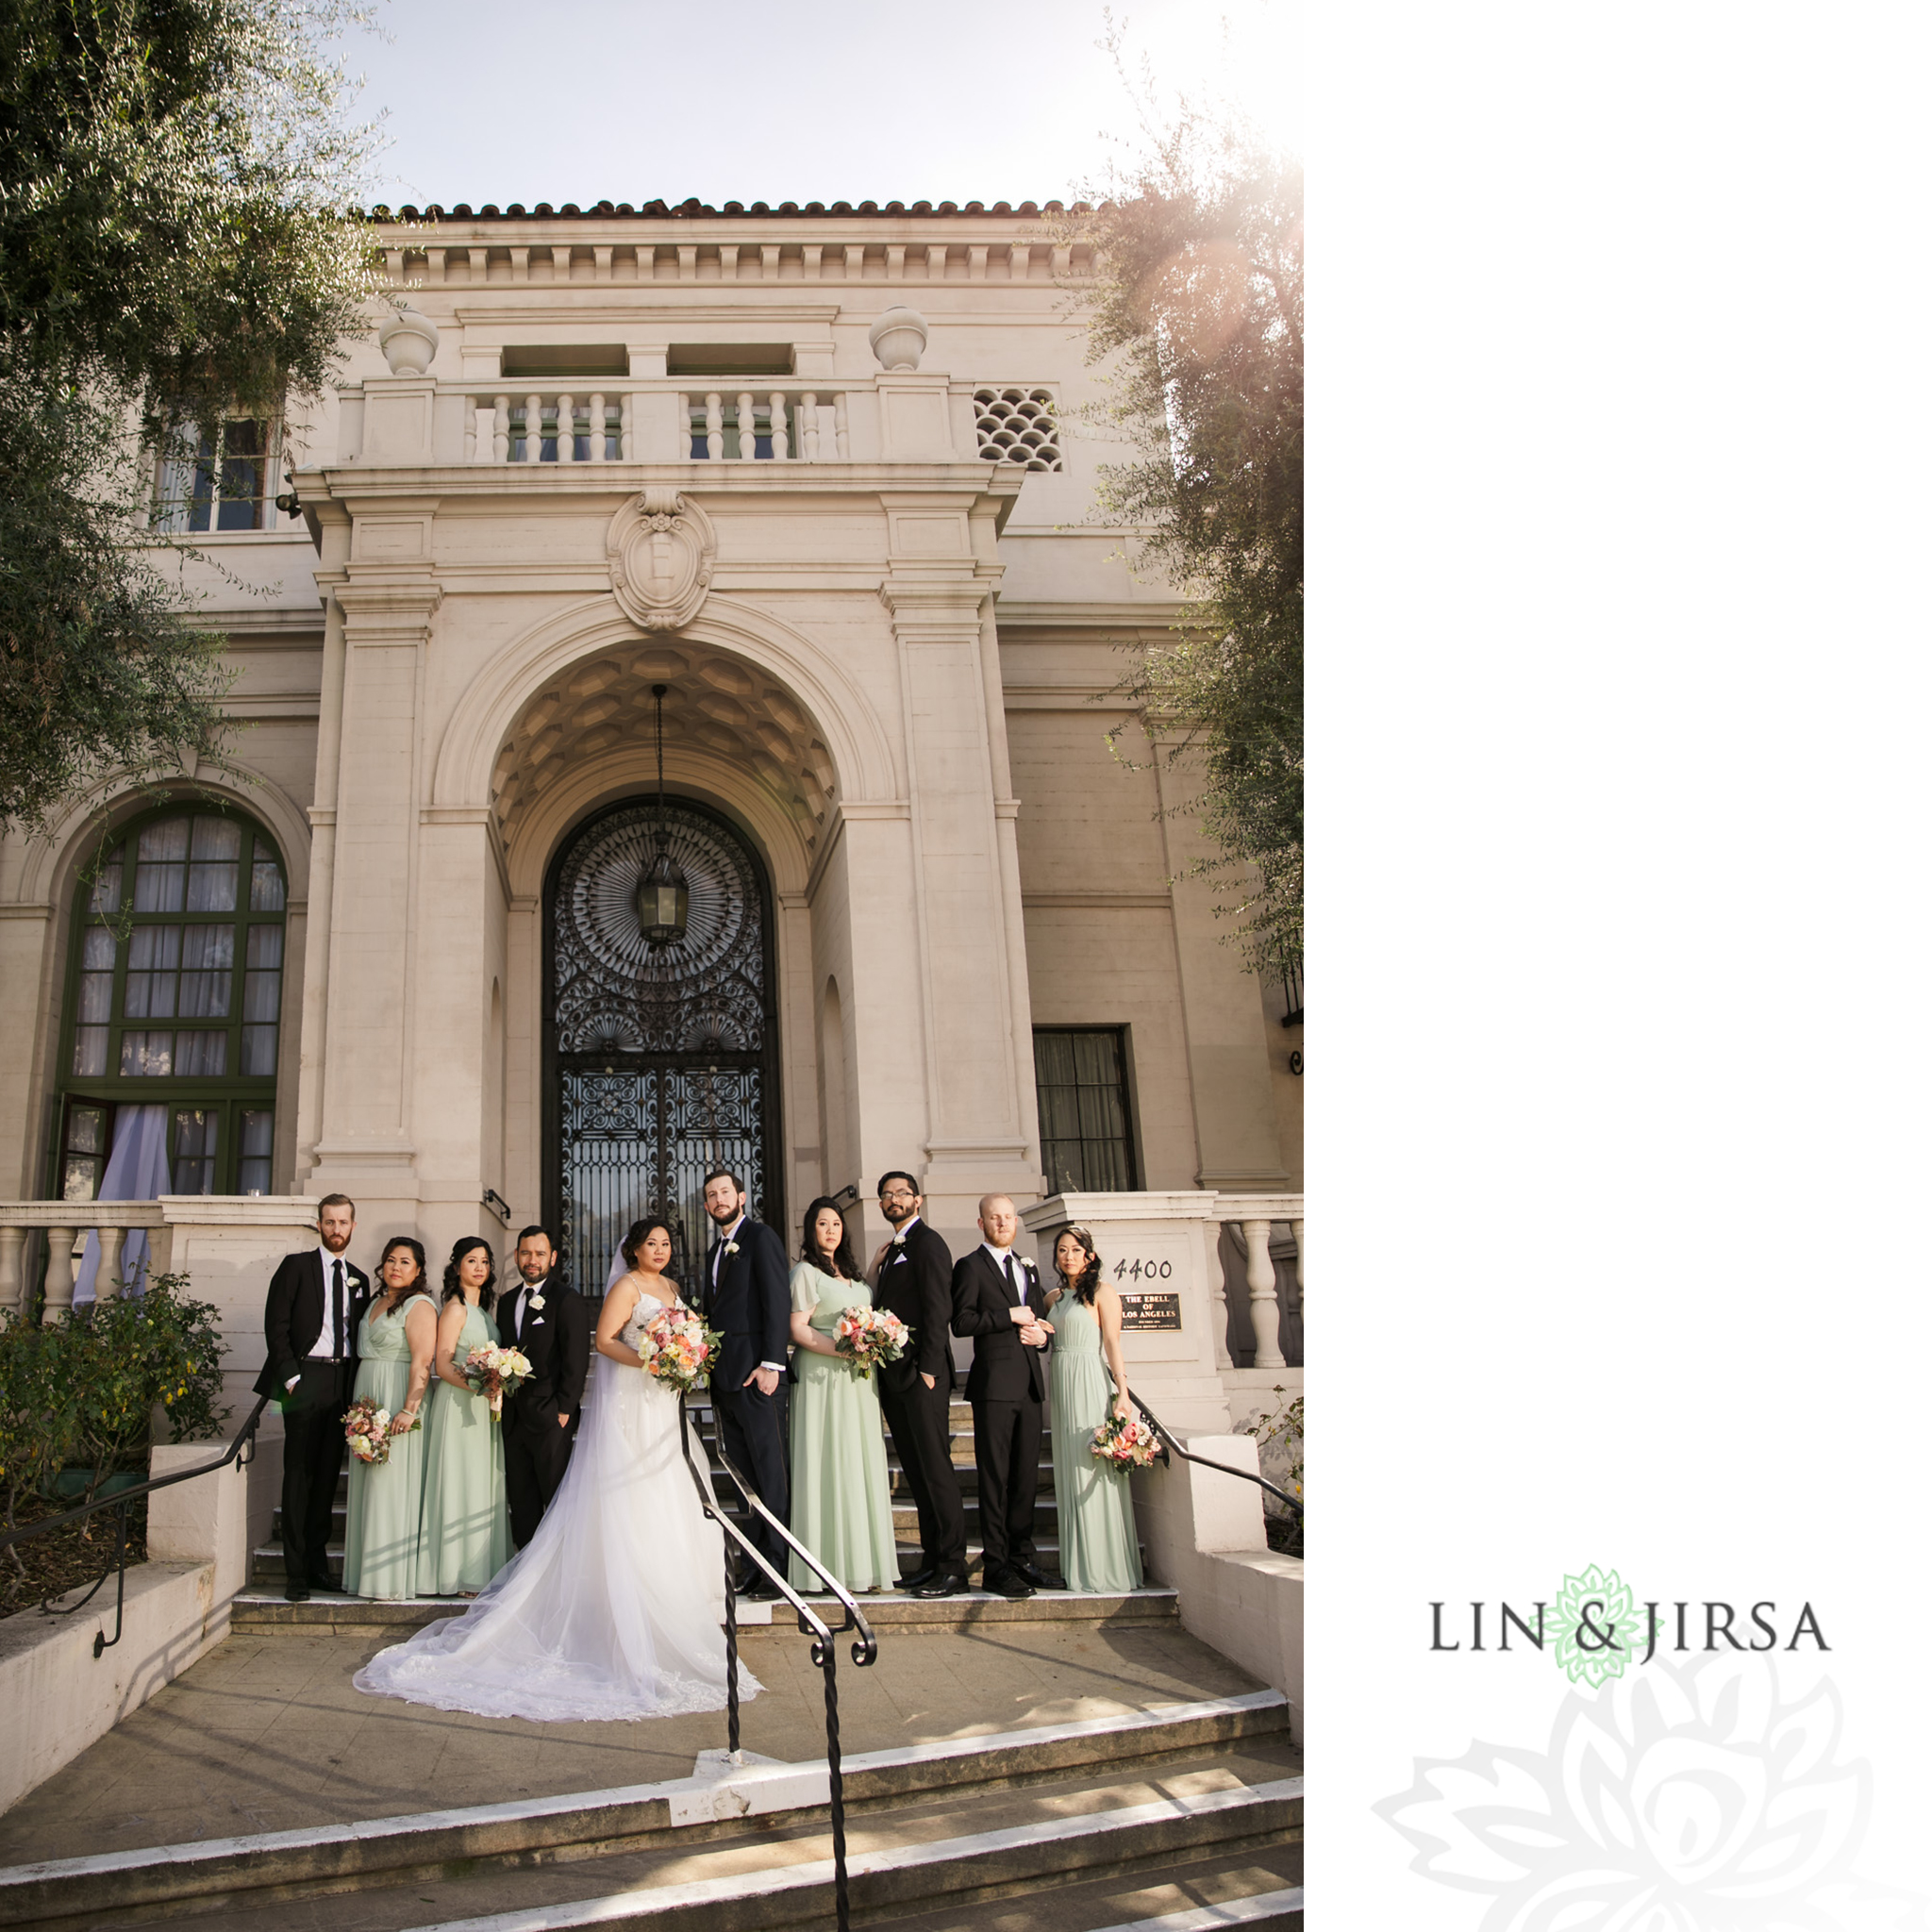 73 The Ebell Los Angeles Wedding Photography